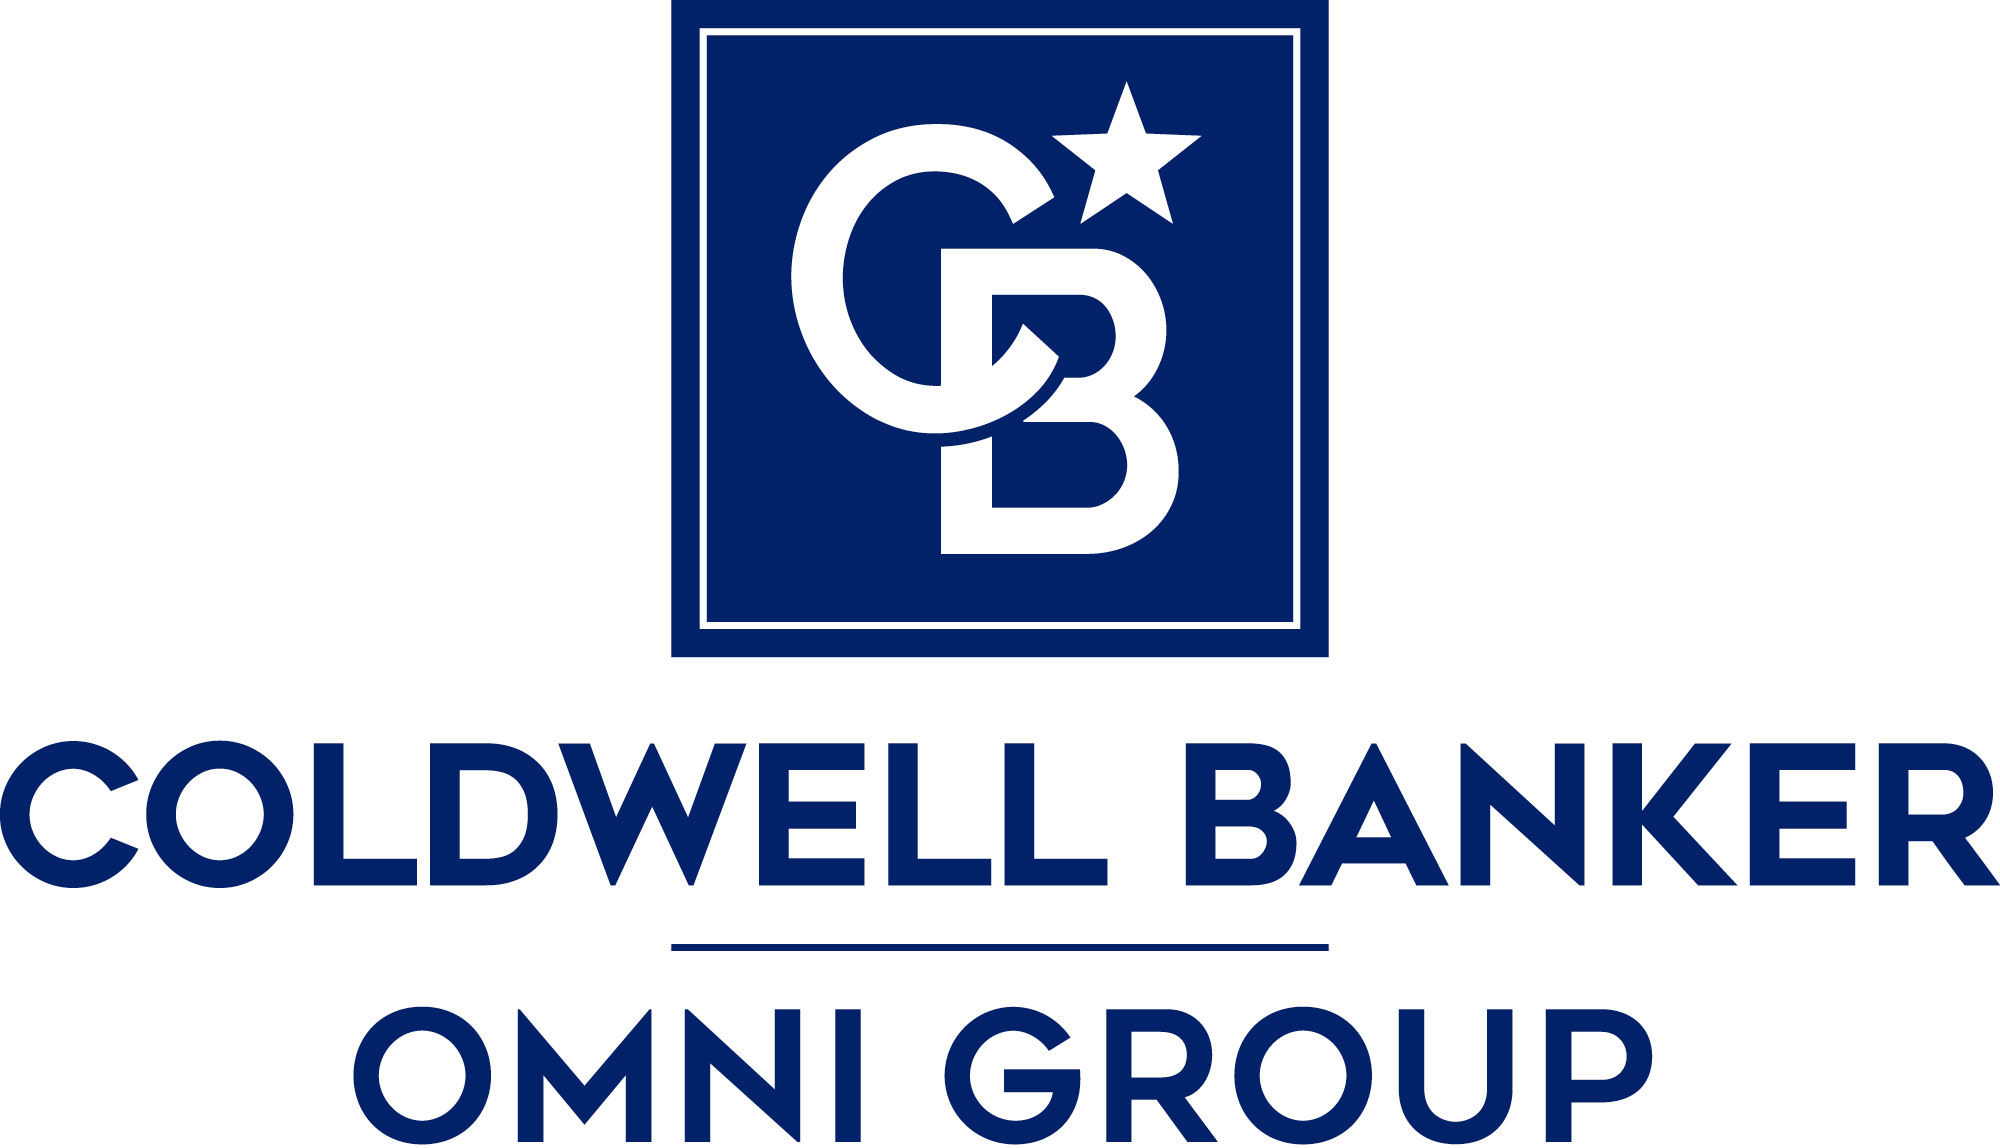 Coldwell Banker Omni Group logo